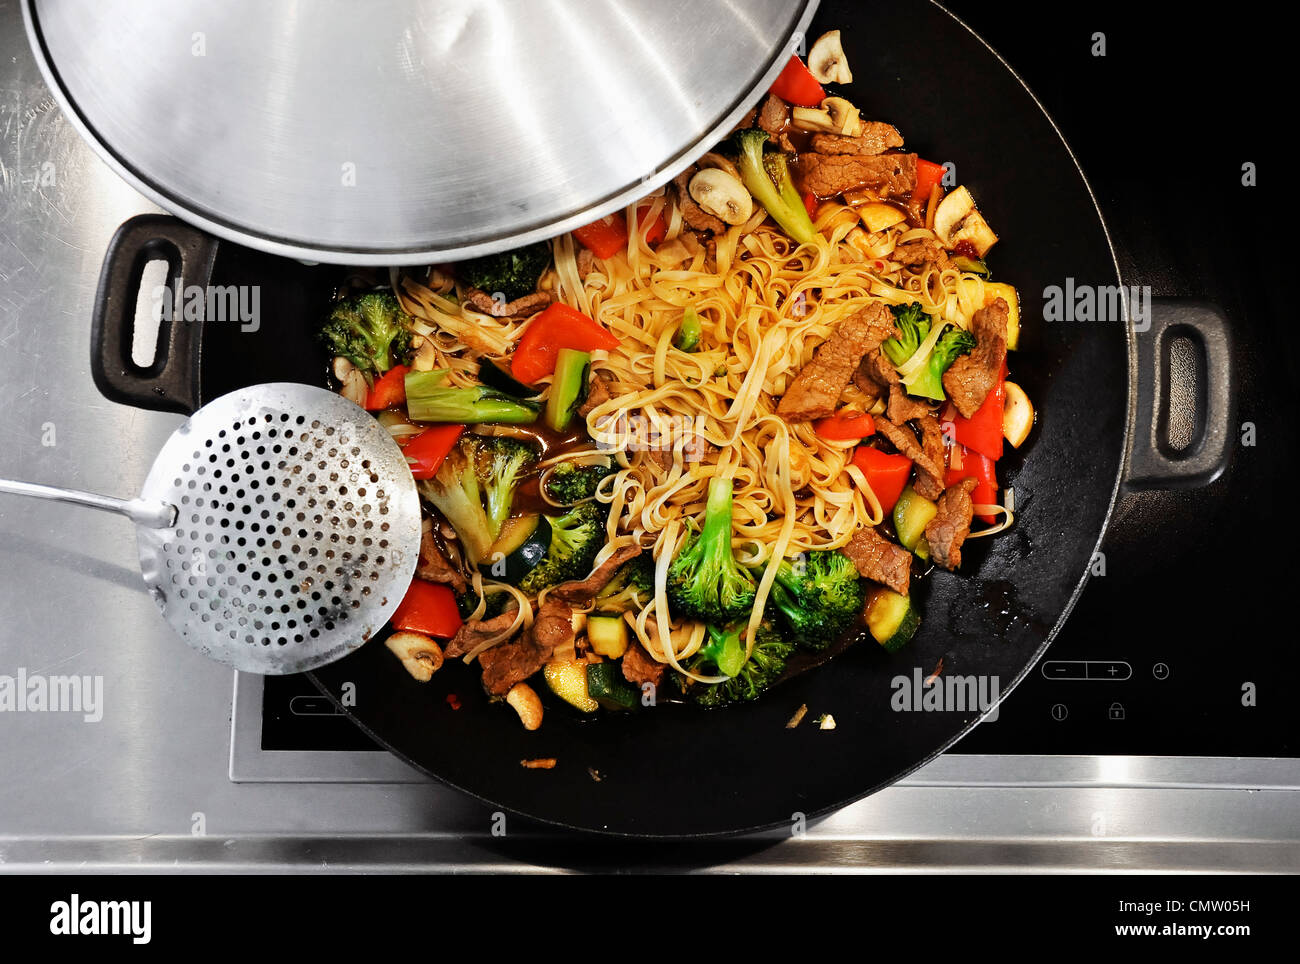 Cooking vegetable stir-fry in a wok - Stock Image